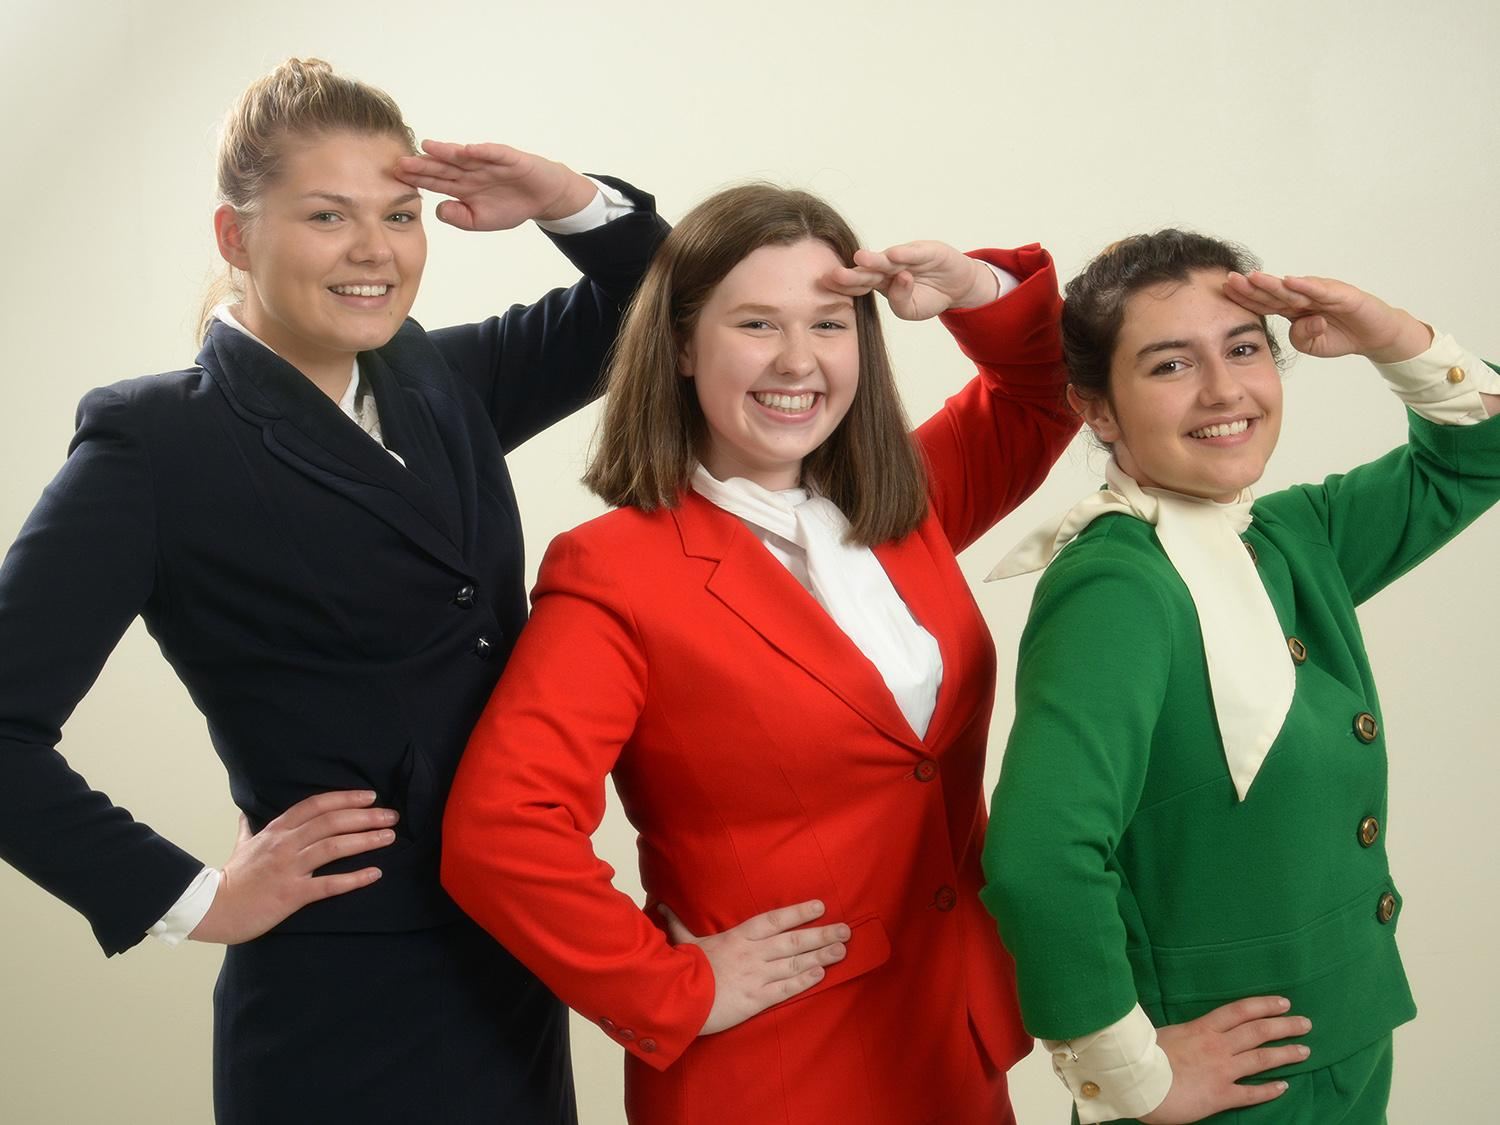 3 actresses dressed as stewardesses salute the camera